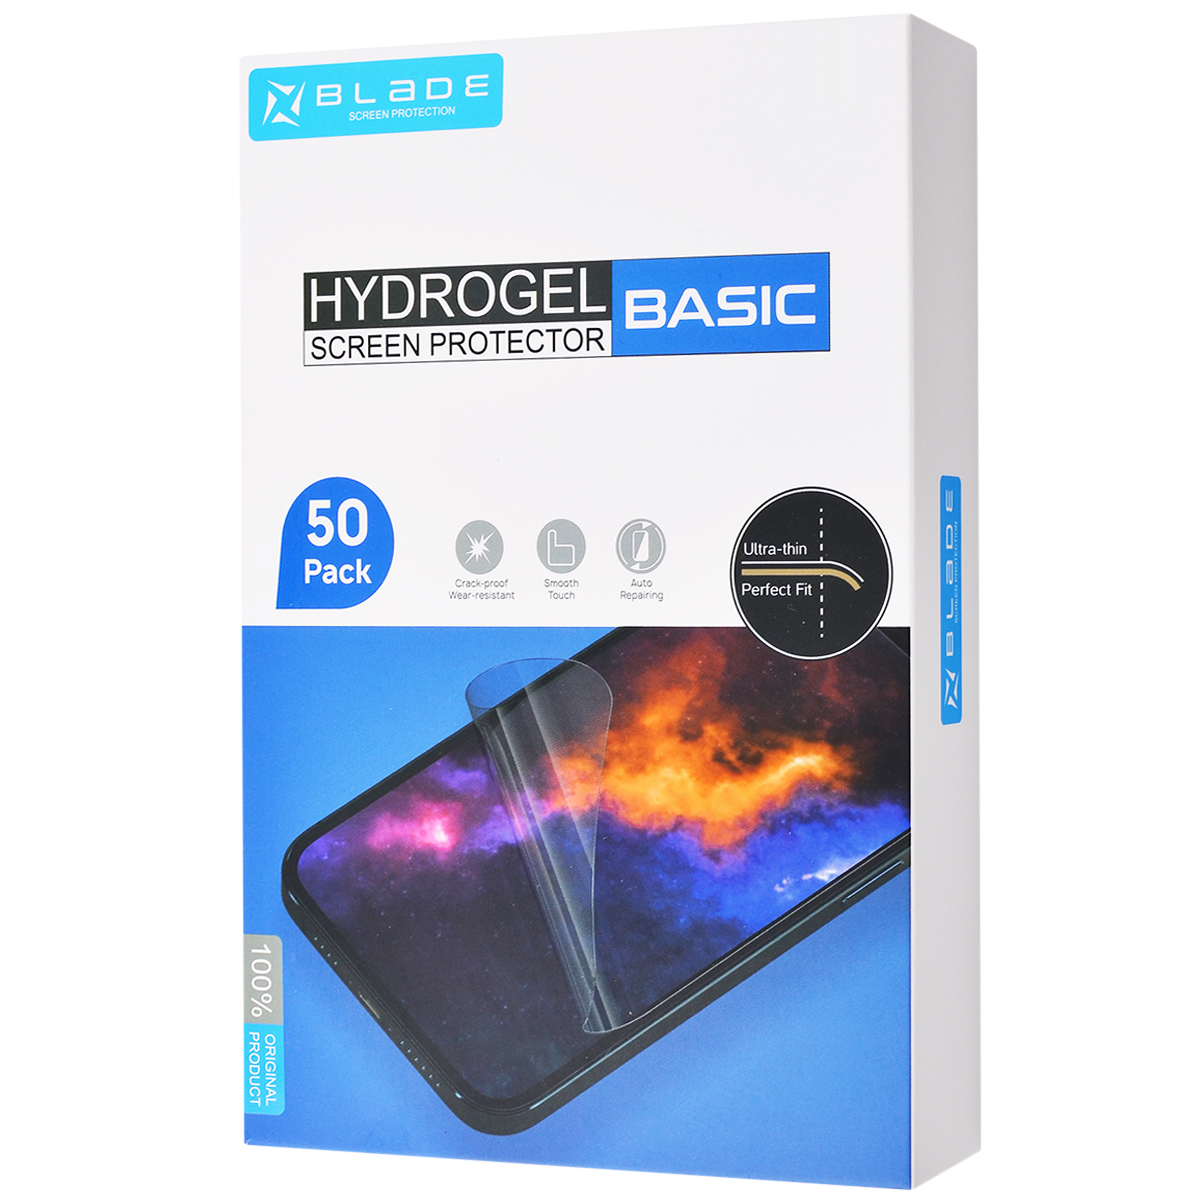 BLADE Hydrogel Screen Protection